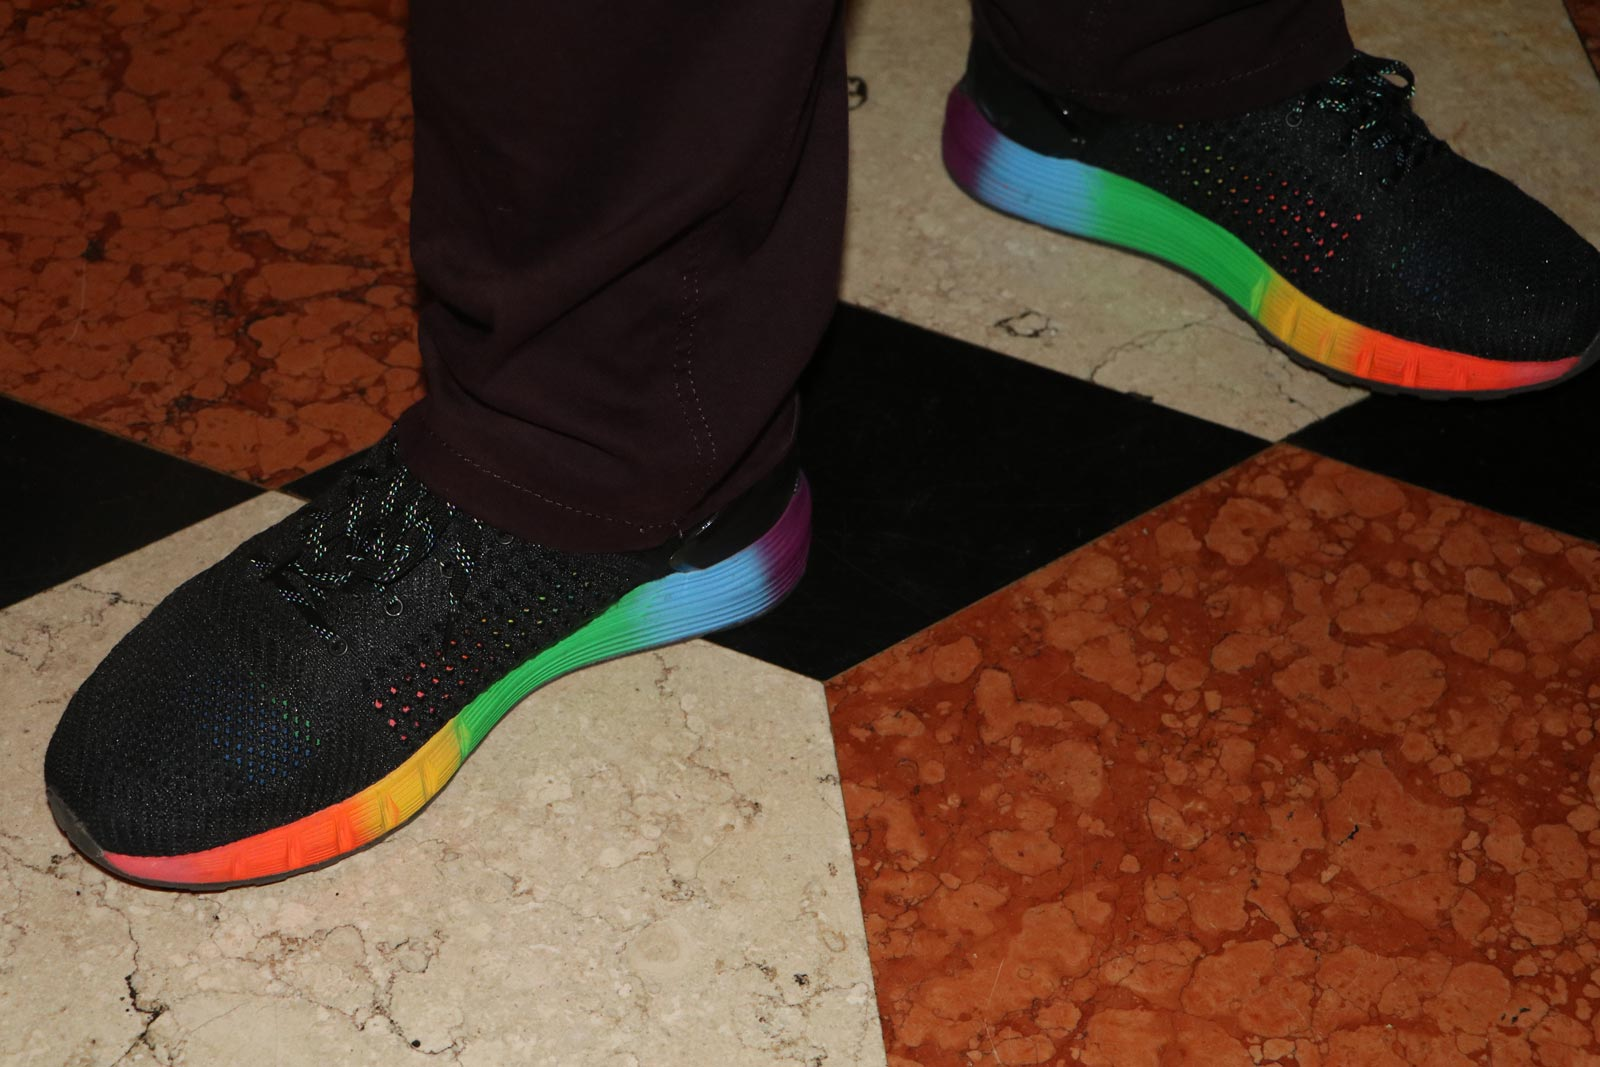 Hudson Taylor's Rainbow Shoes by Under Armor